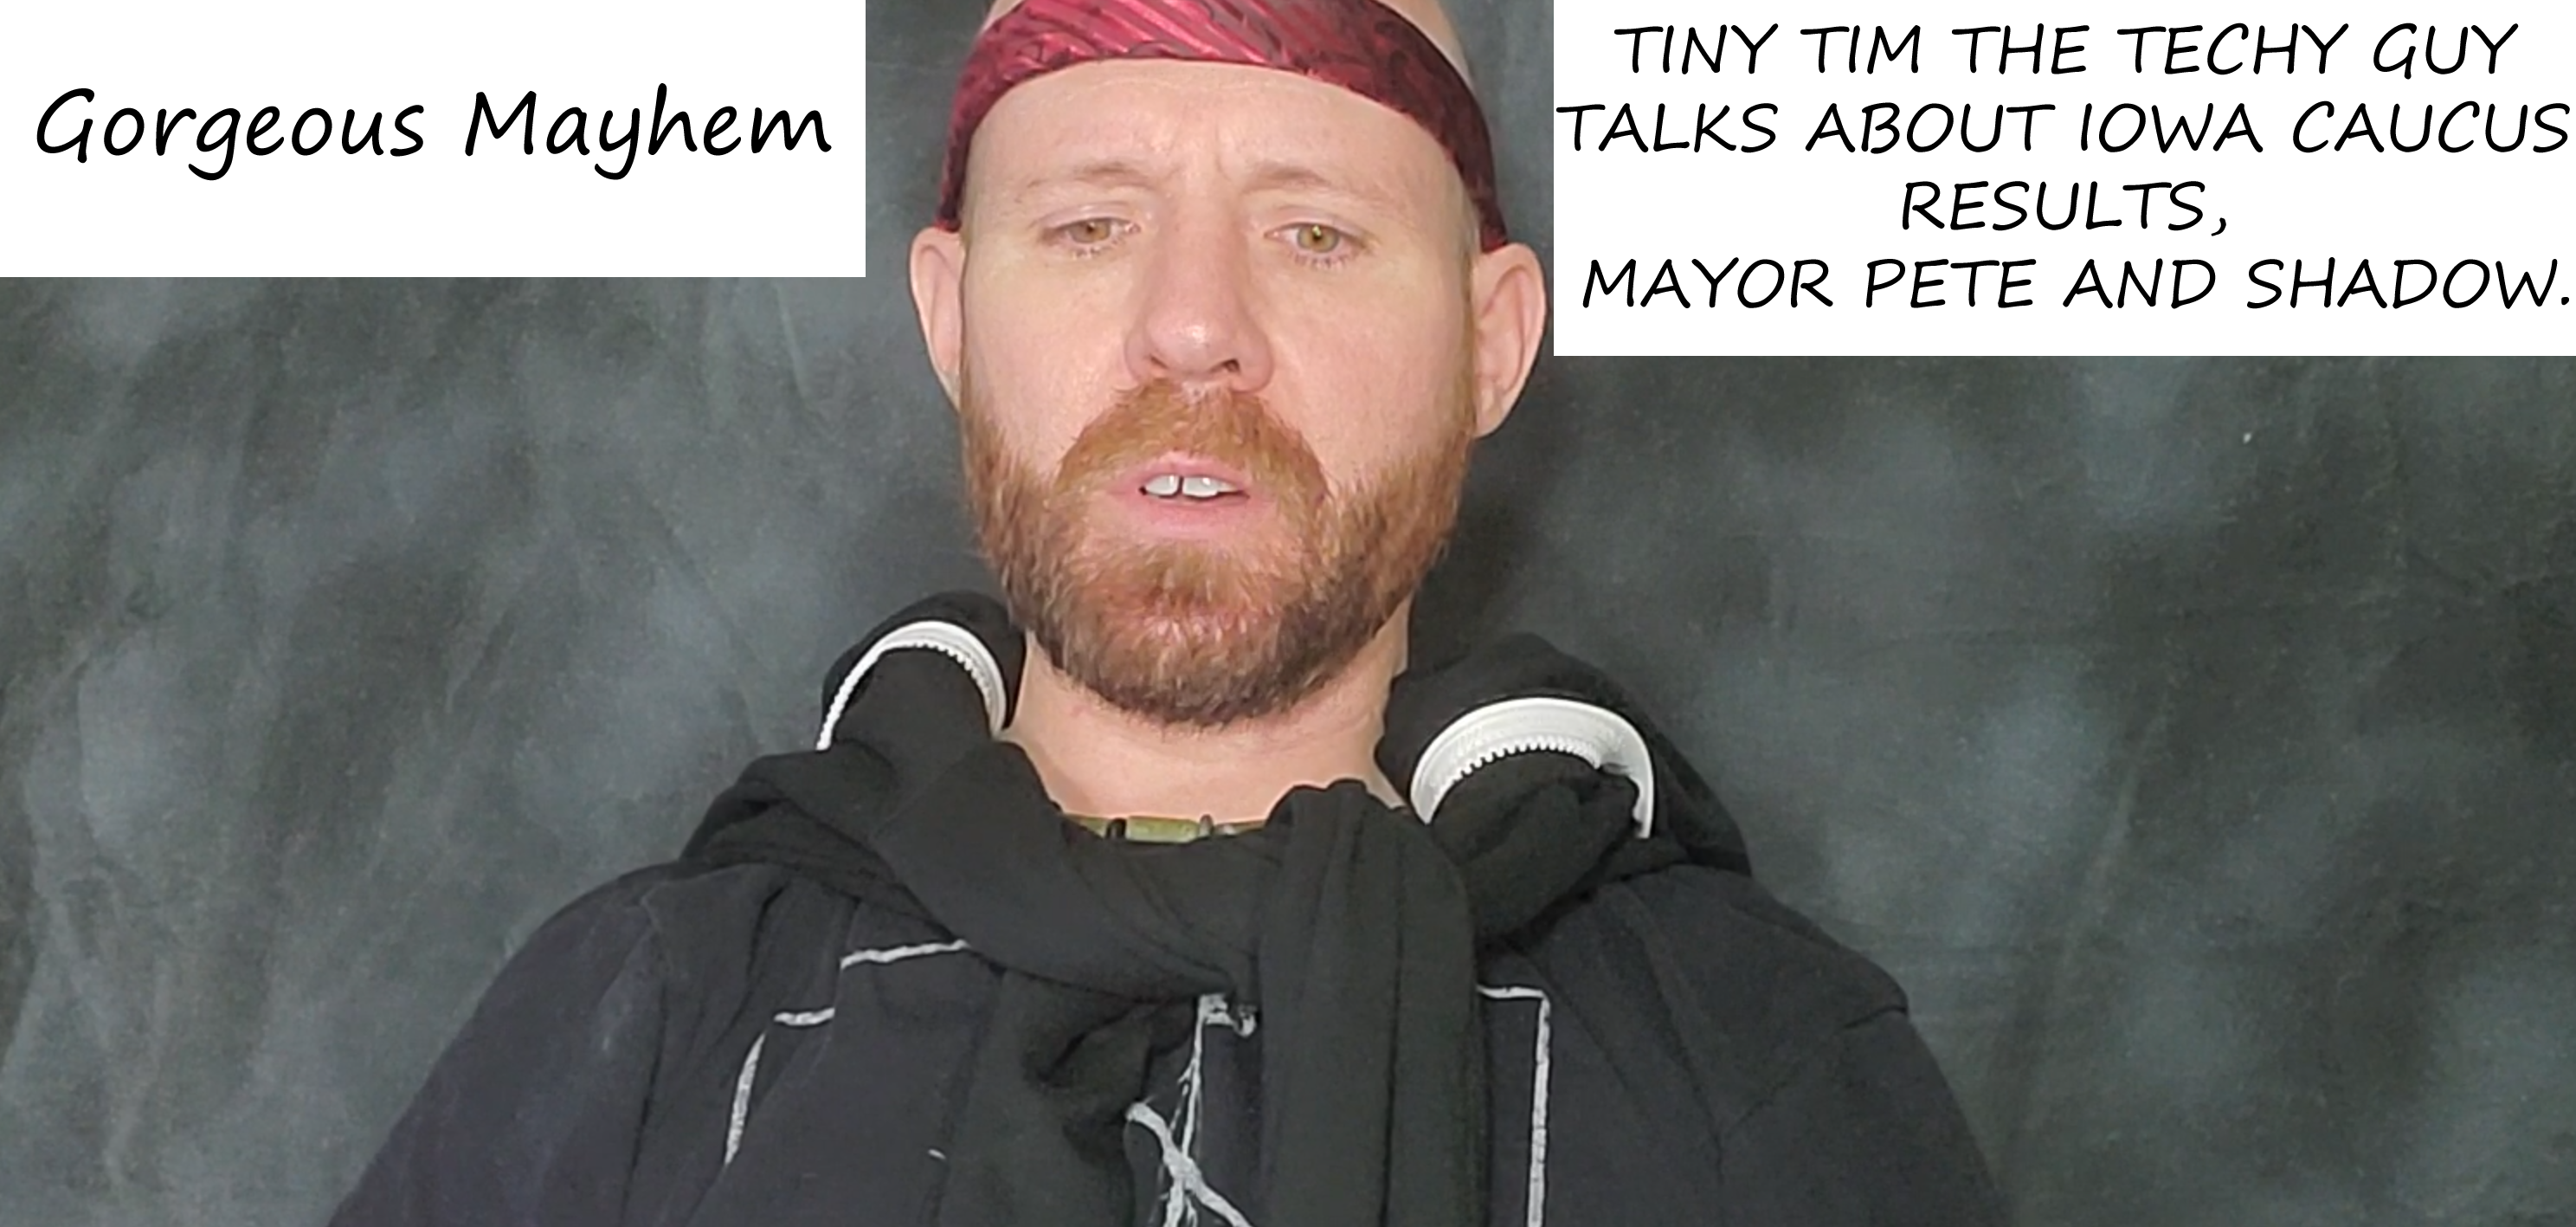 TINY TIM THE TECHY GUY TALKS ABOUT IOWA CAUCUS RESULTS, MAYOR PETE AND SHADOW.